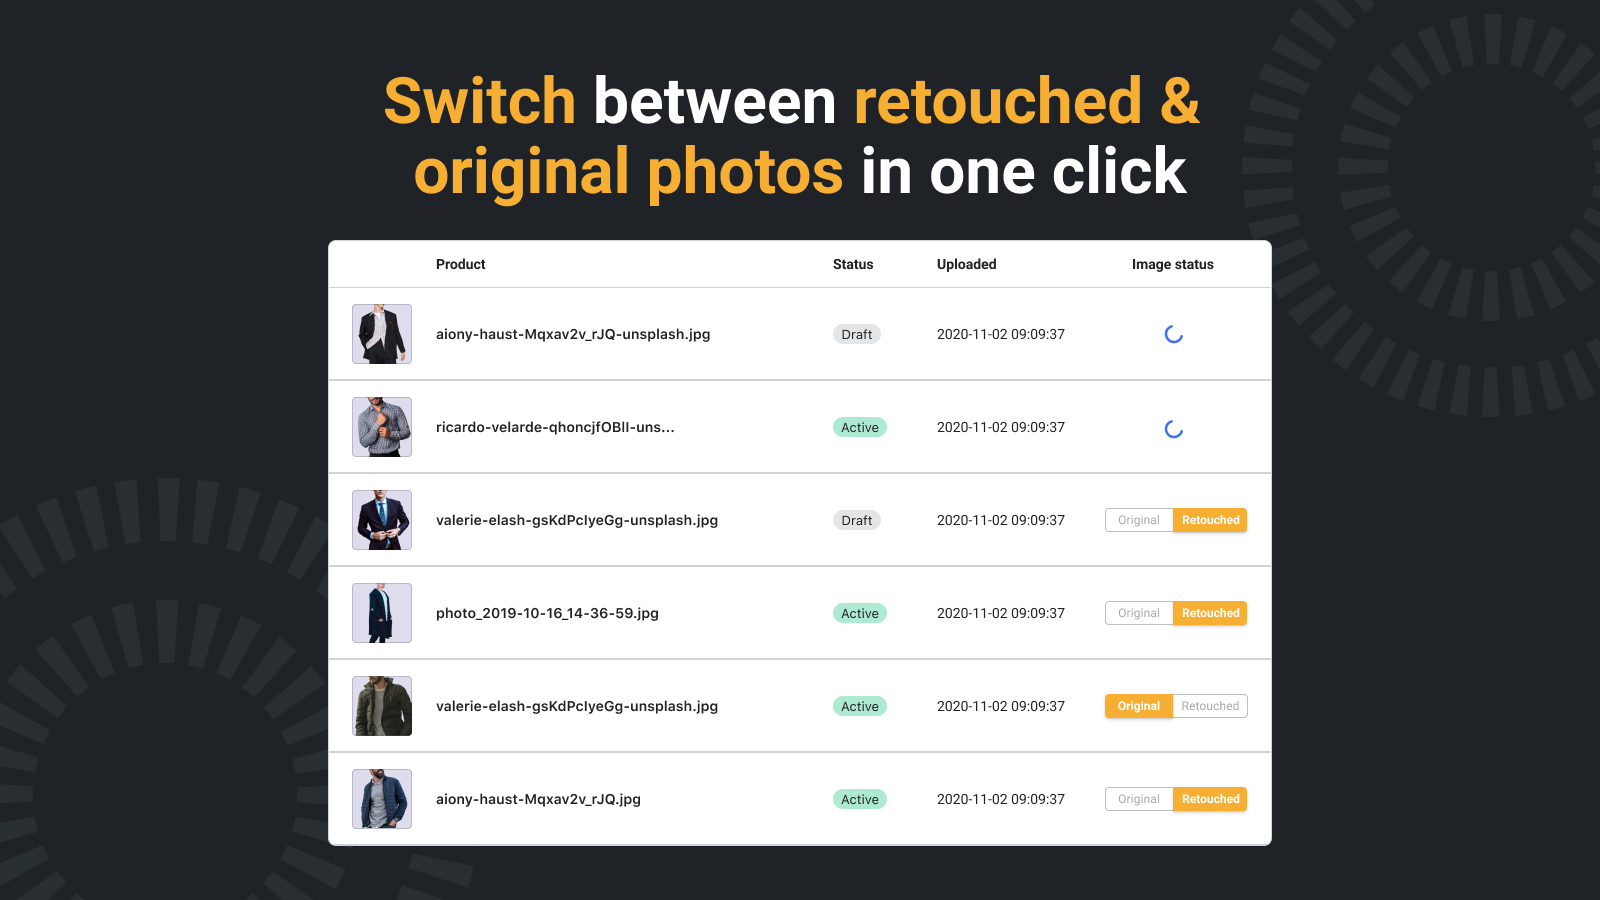 Switch between retouched and original images